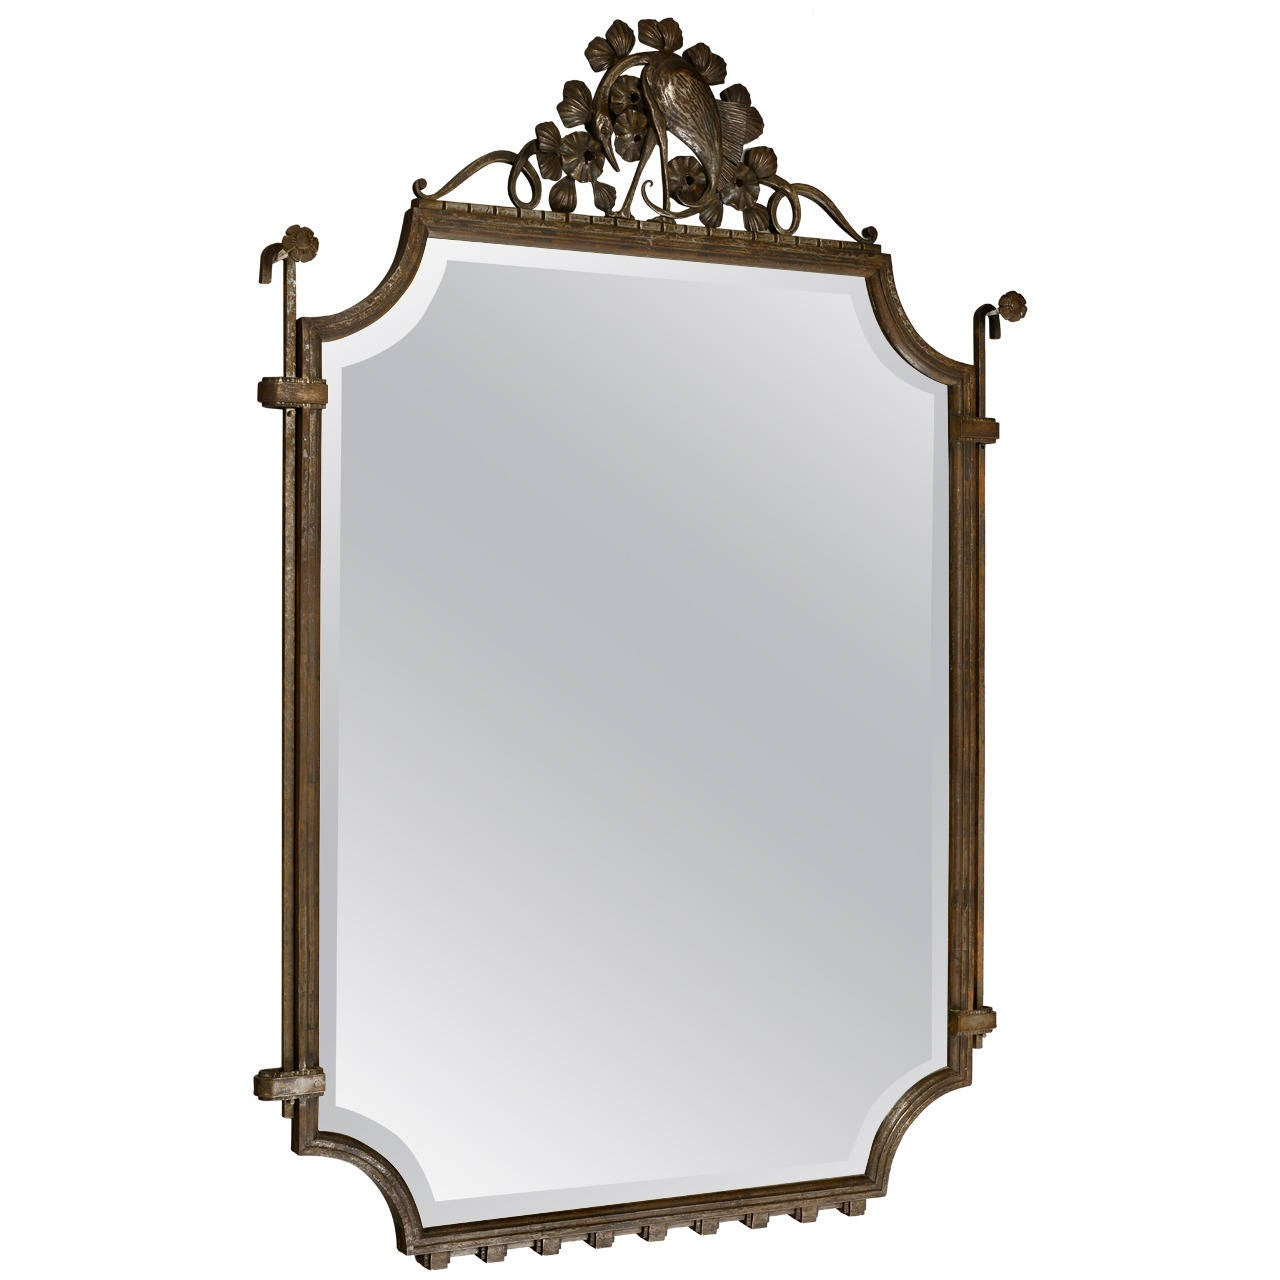 Large raymond subes 1925 wrought iron mirror at 1stdibs for Wrought iron mirror